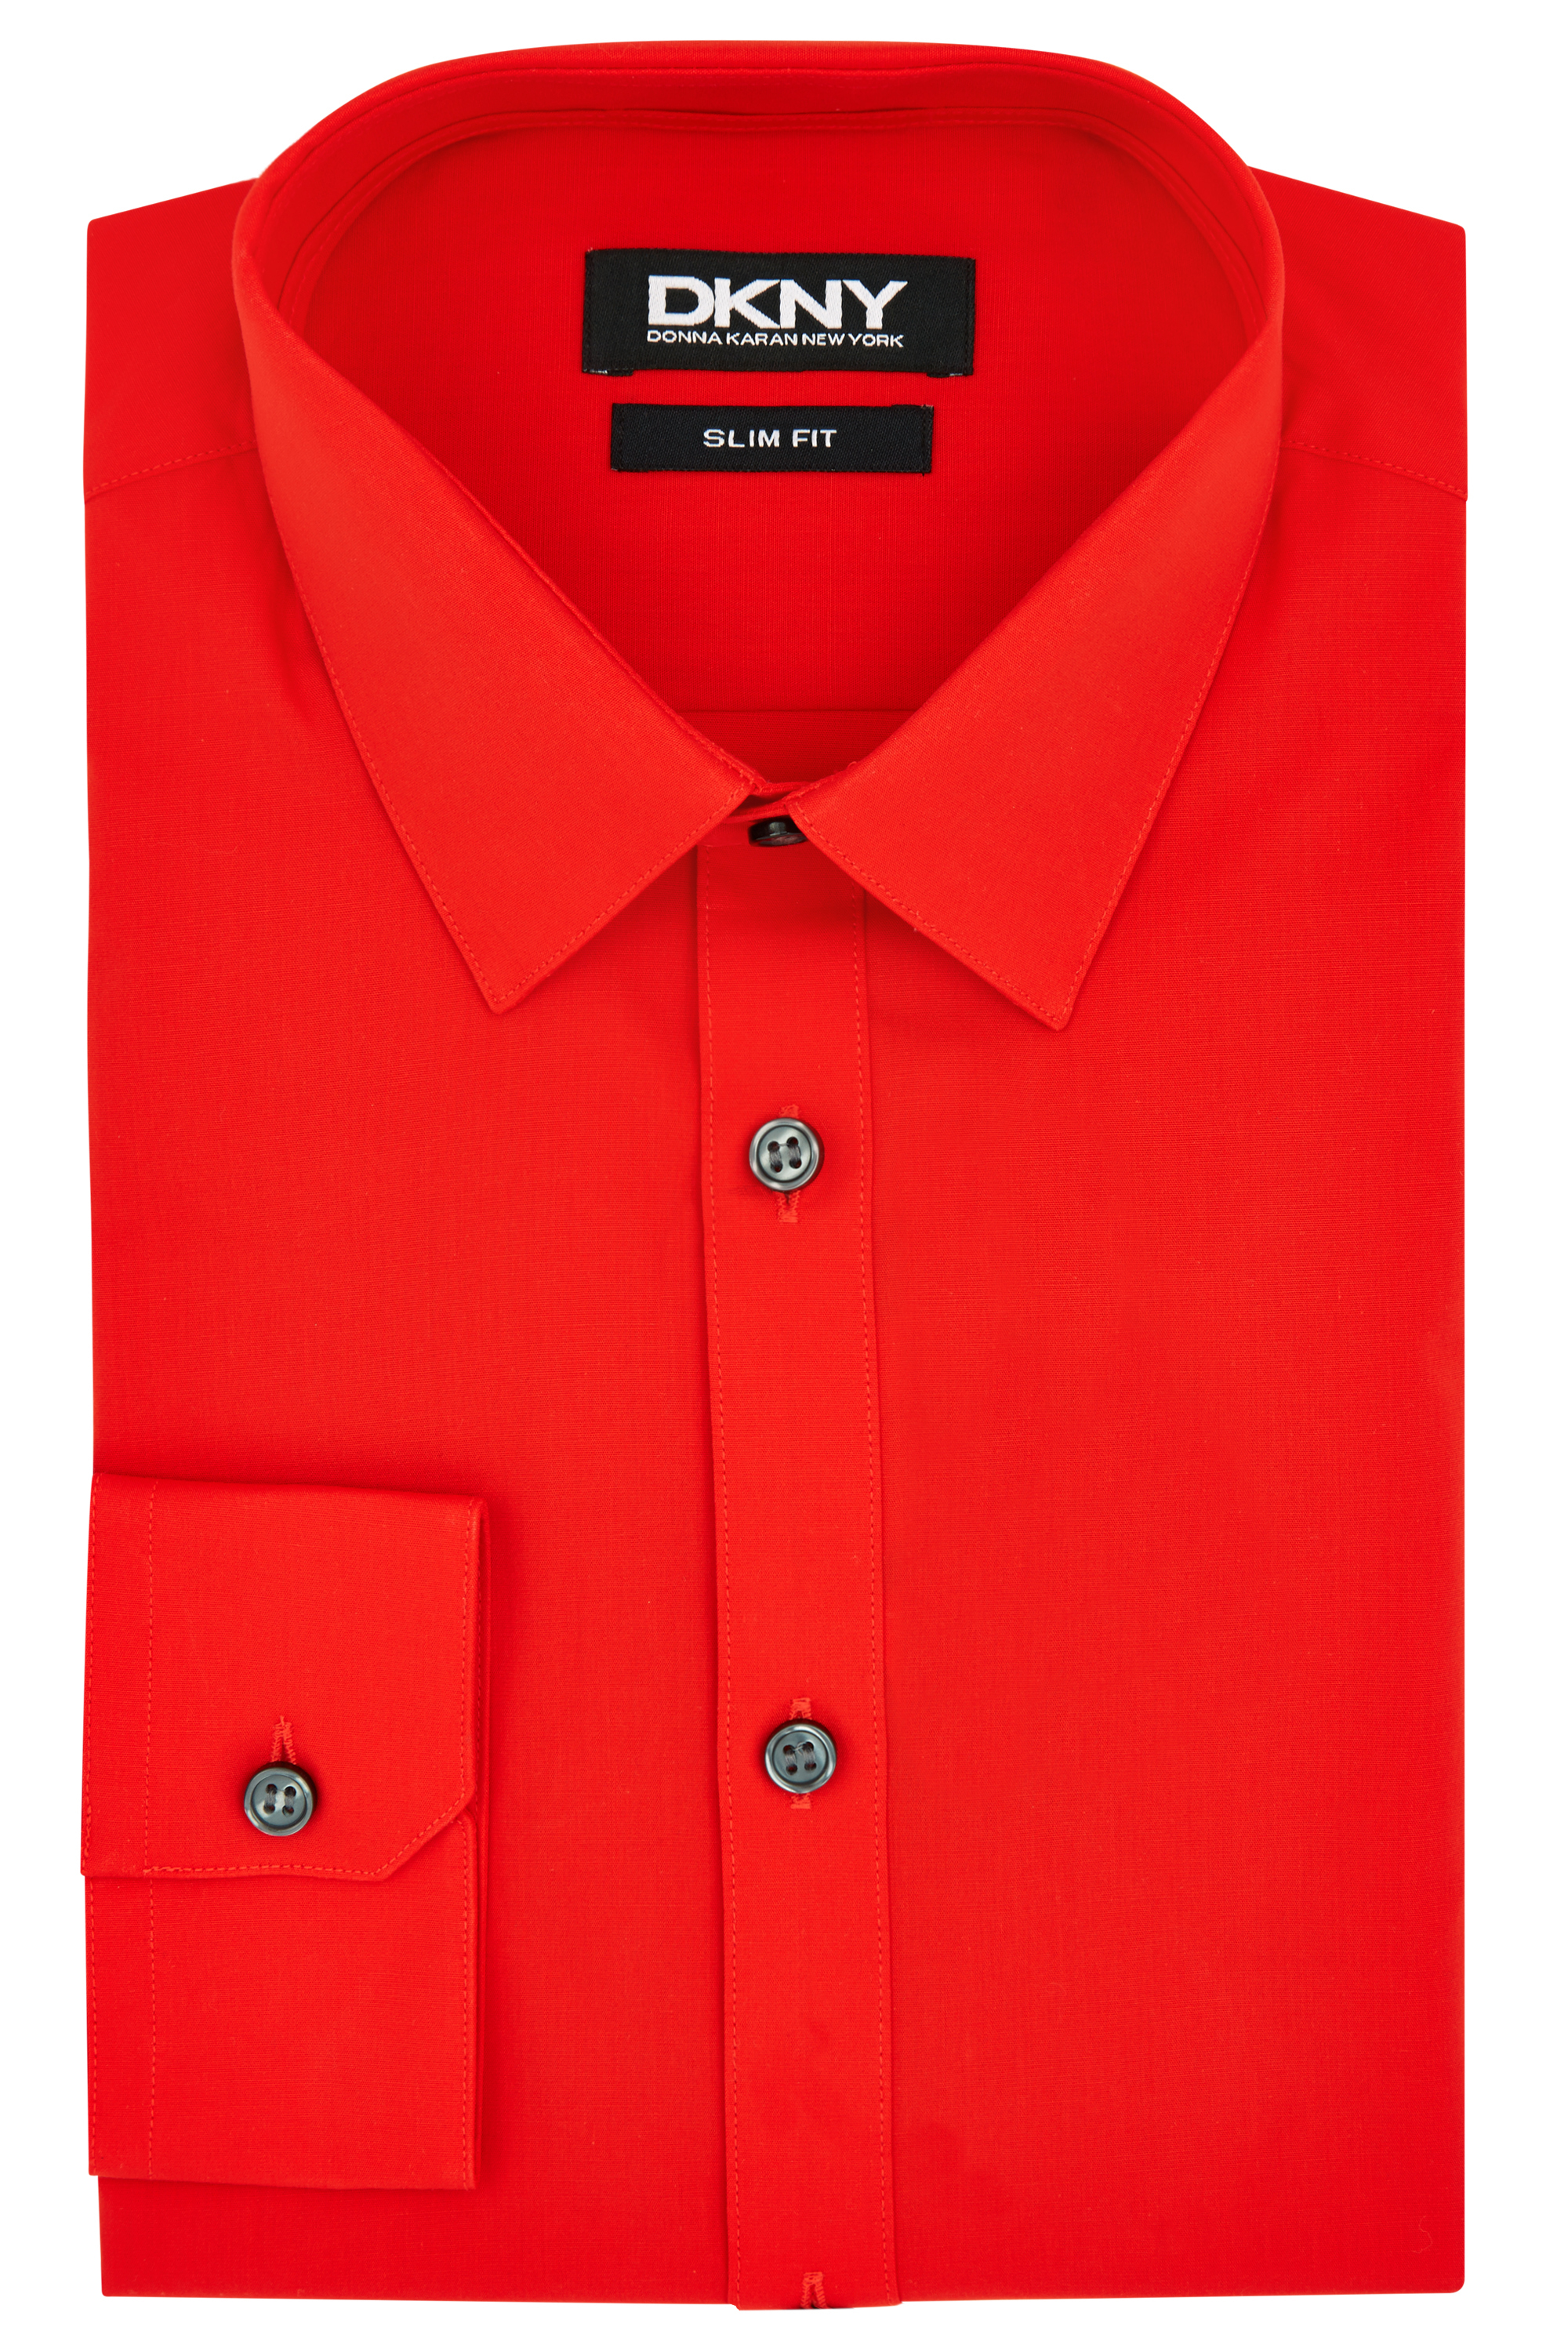 Lyst dkny slim fit red single cuff shirt in red for men for Cuff shirts for men